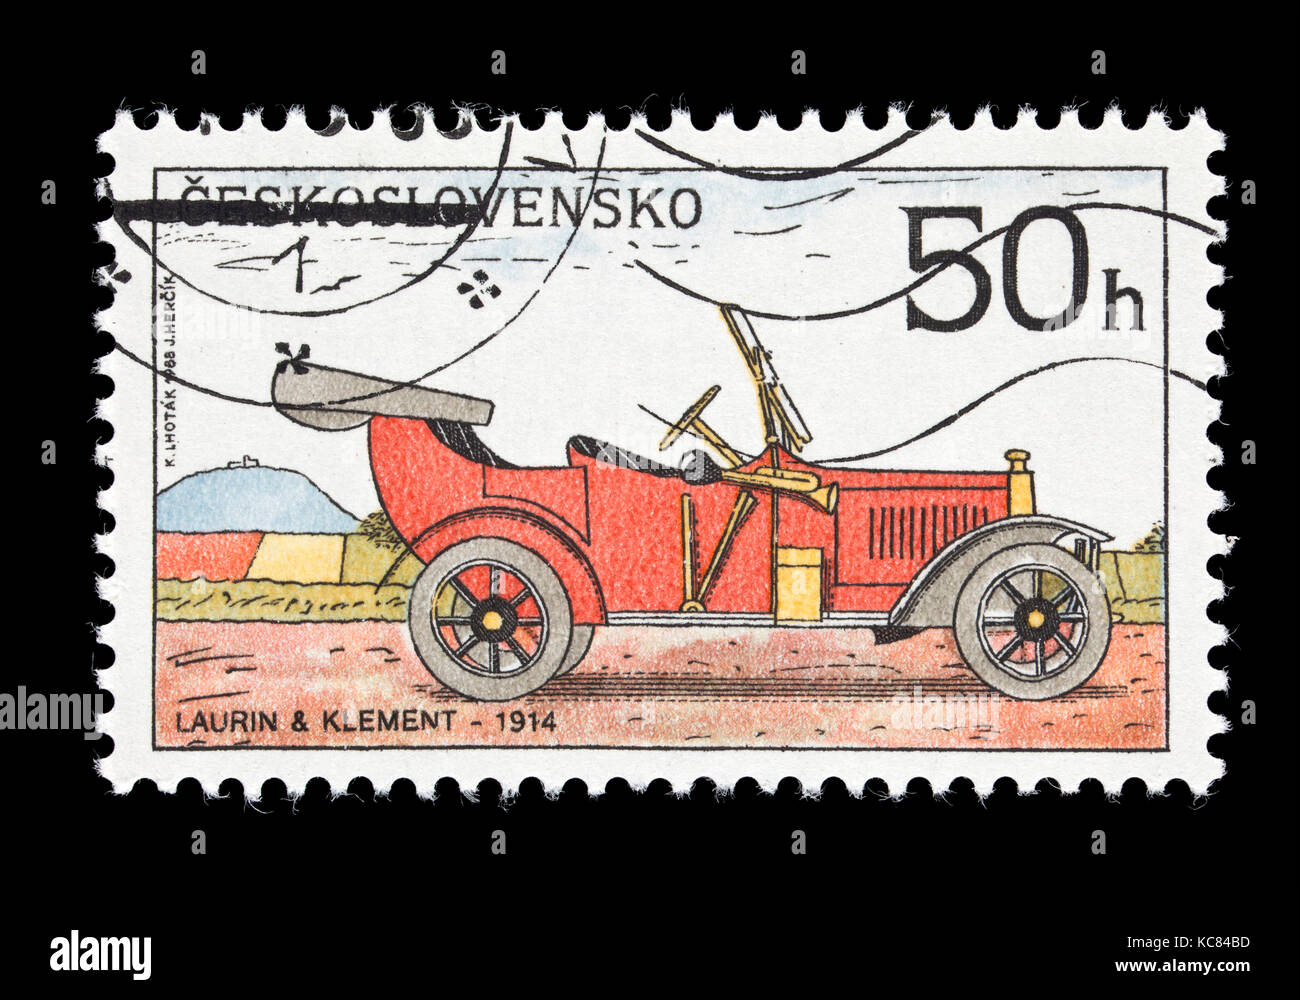 Postage stamp from Czechoslovakia depicting a 1914 Laurin and Klement classic automobile - Stock Image